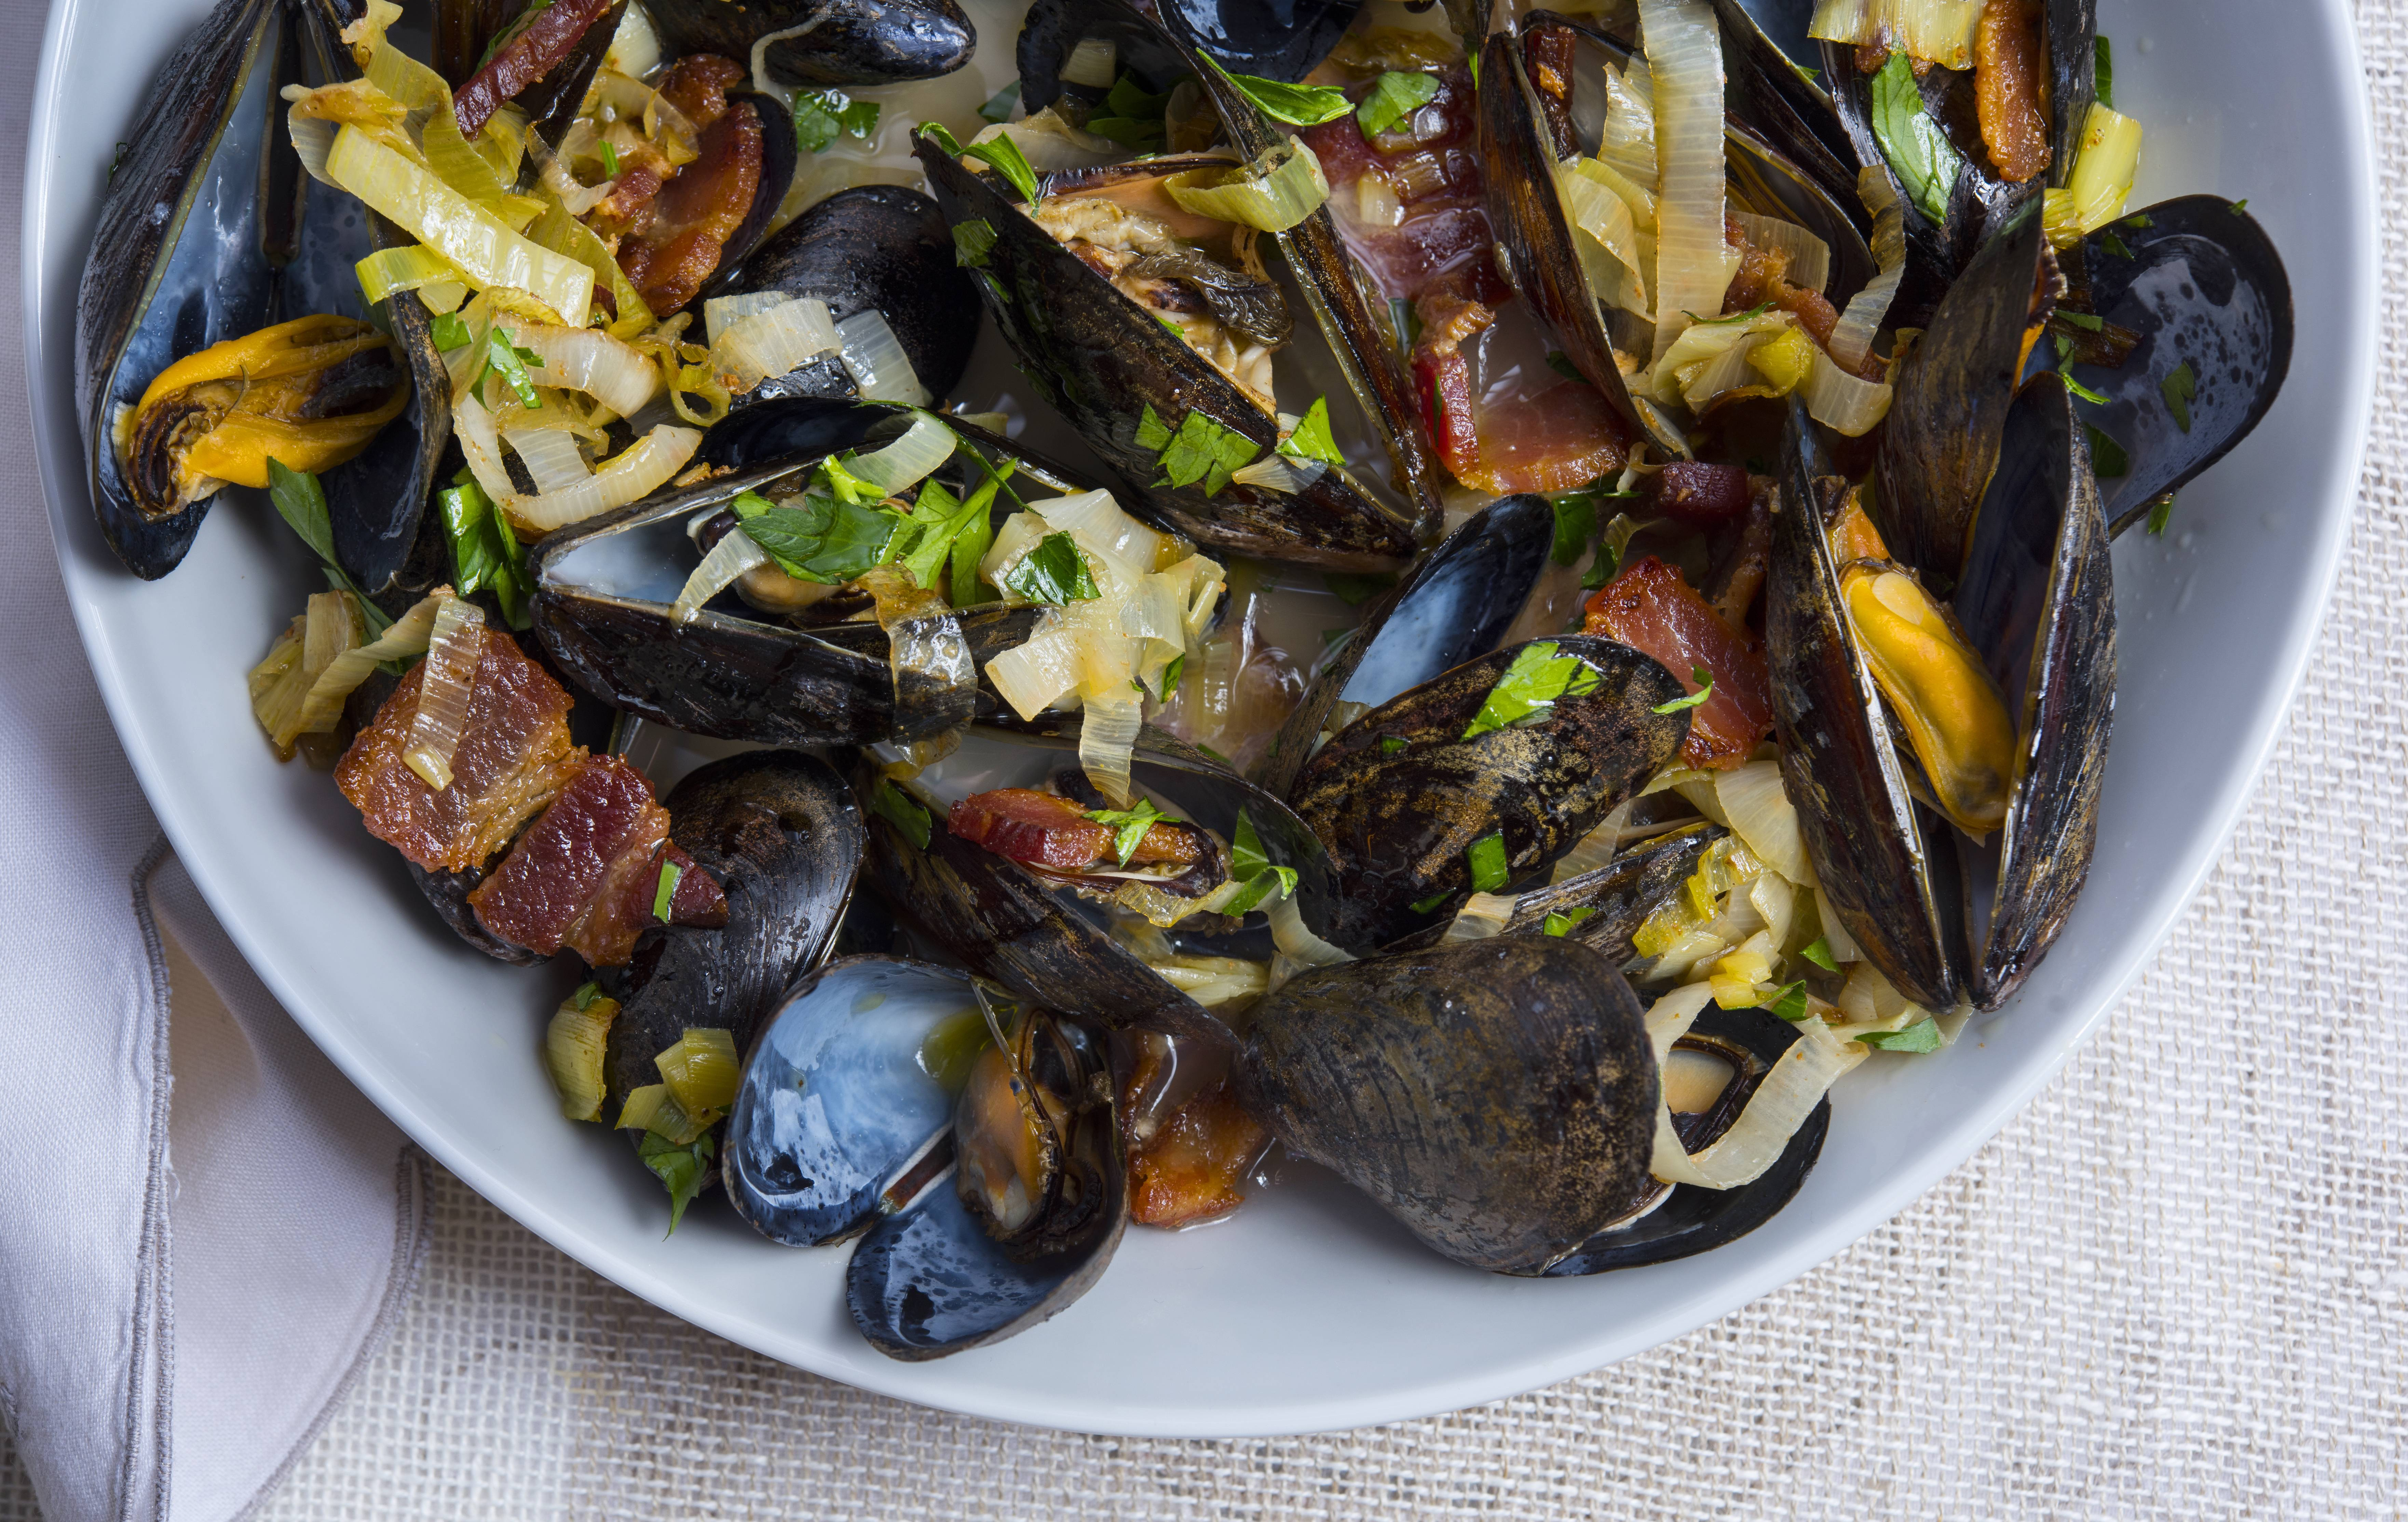 On the fridge: Open the oven for easier mussels